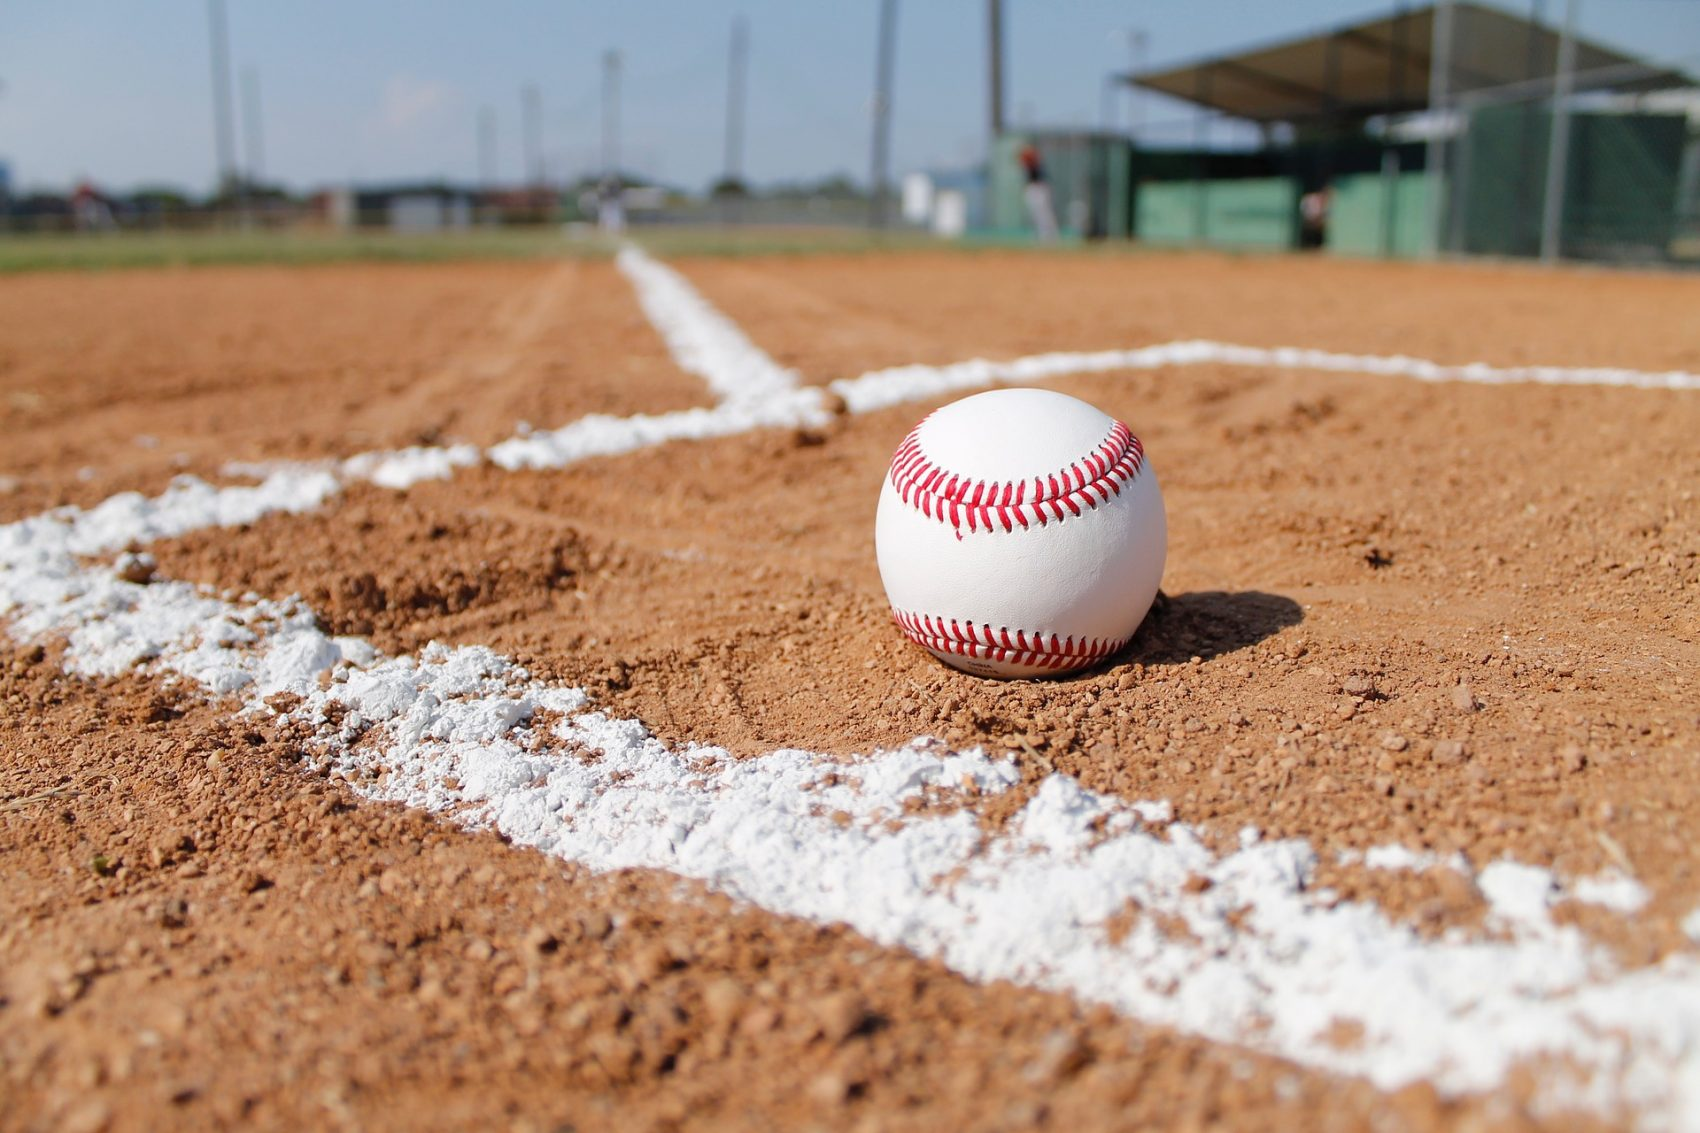 """""""In my first at-bat, I hit a home run. It lacked the drama of home runs that disappear over a fence. There was no fence. There was the bare, dusty expanse of schoolyard playground beyond the left fielder and the center fielder,"""" Littlefield writes."""